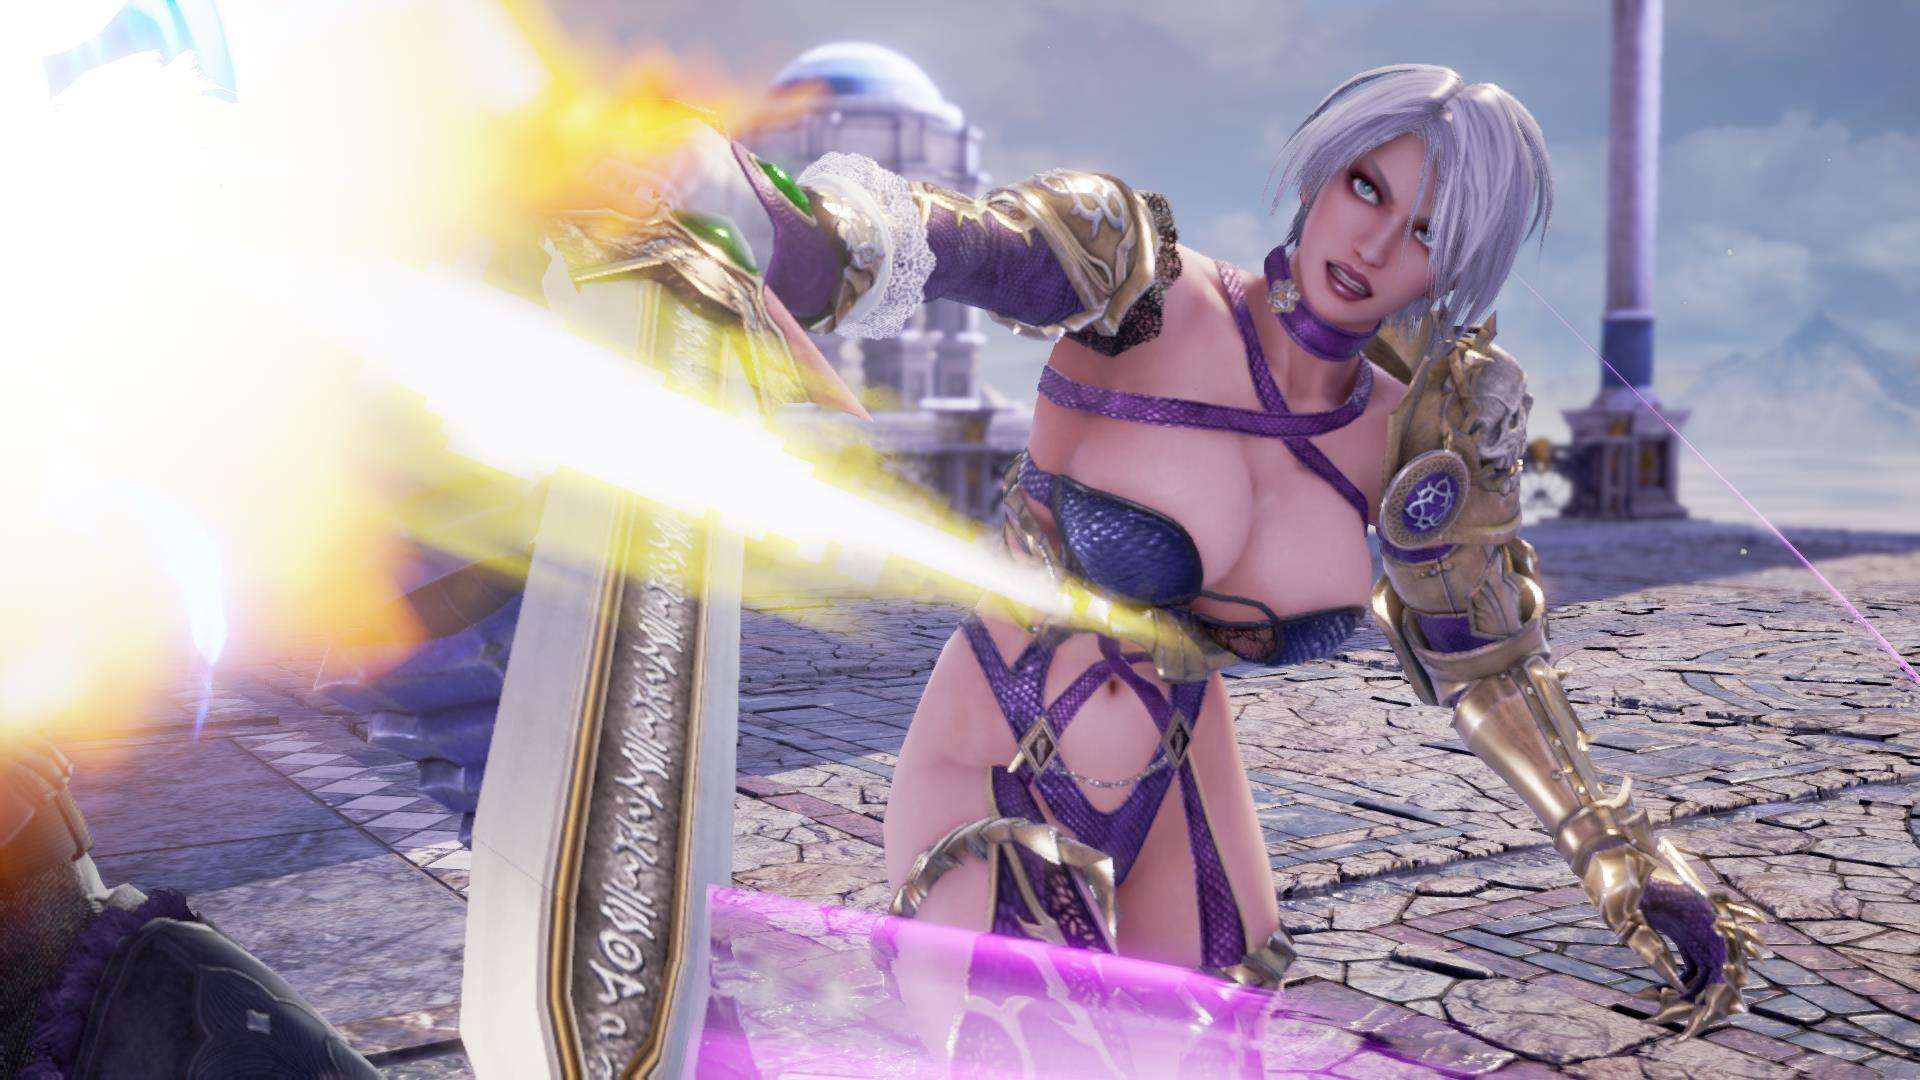 As Soulcalibur 6 seeks to set the series right, its